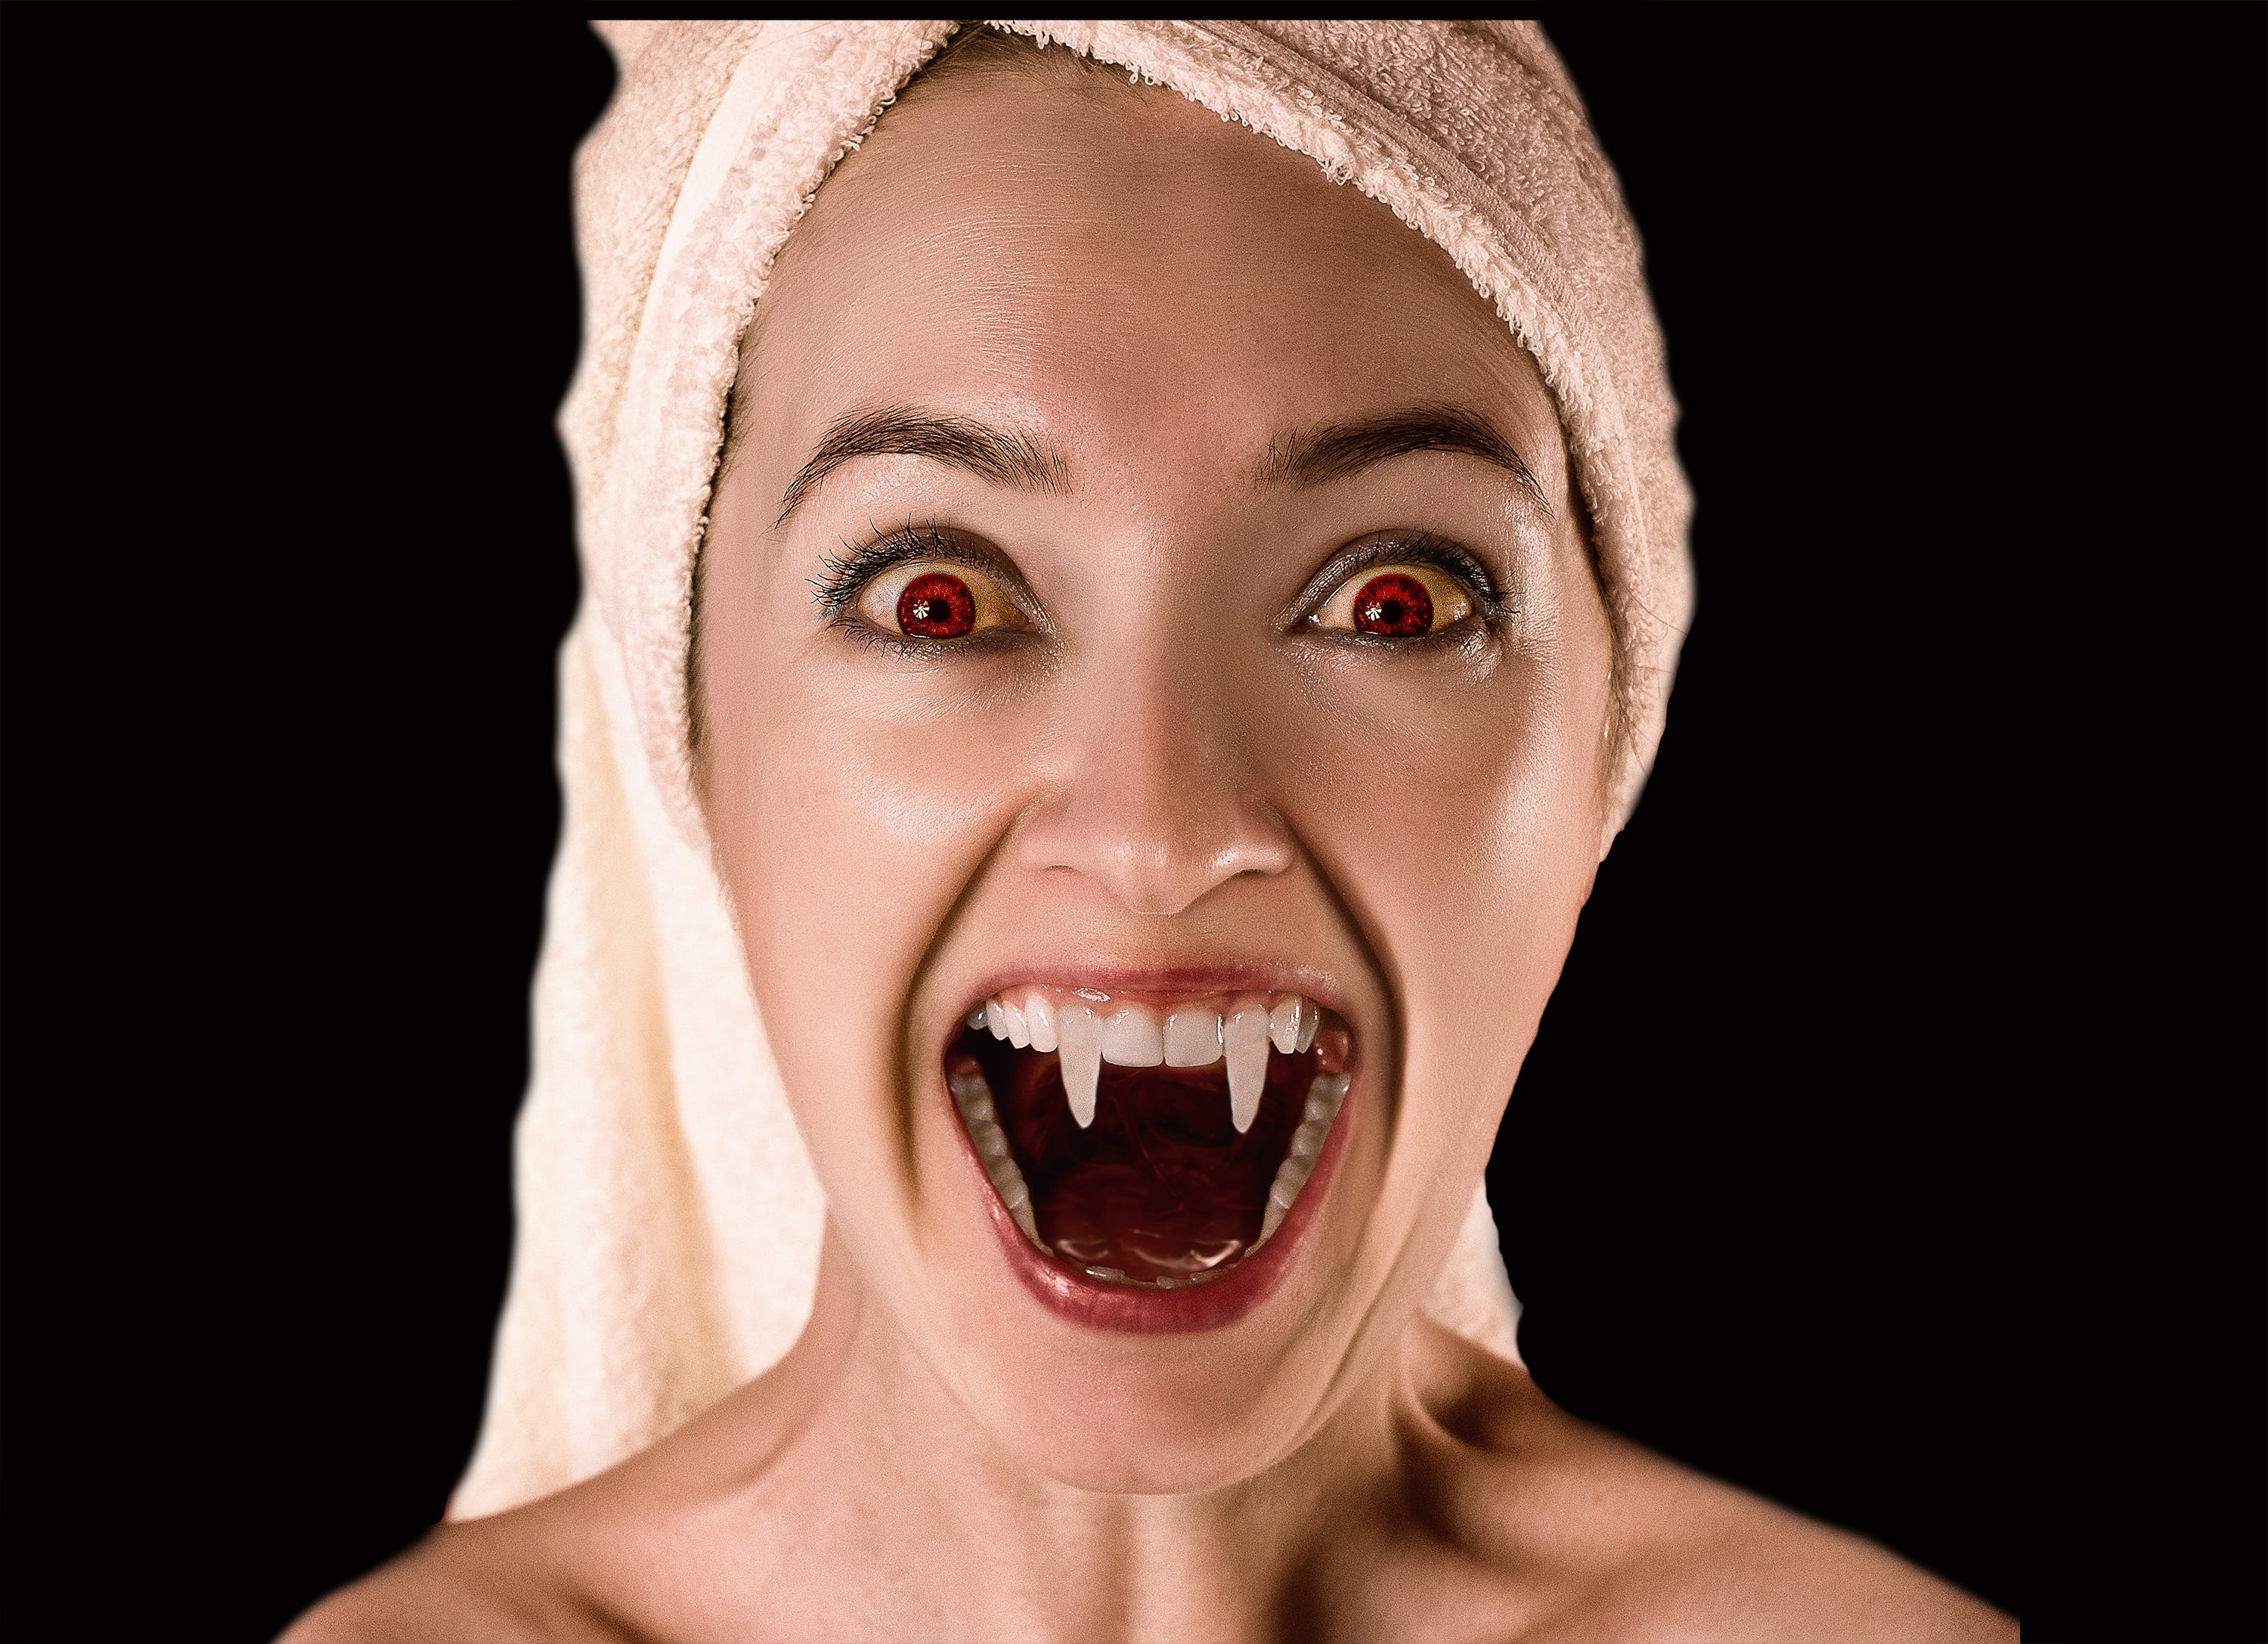 Free stock photo of red, woman, picture, vampire